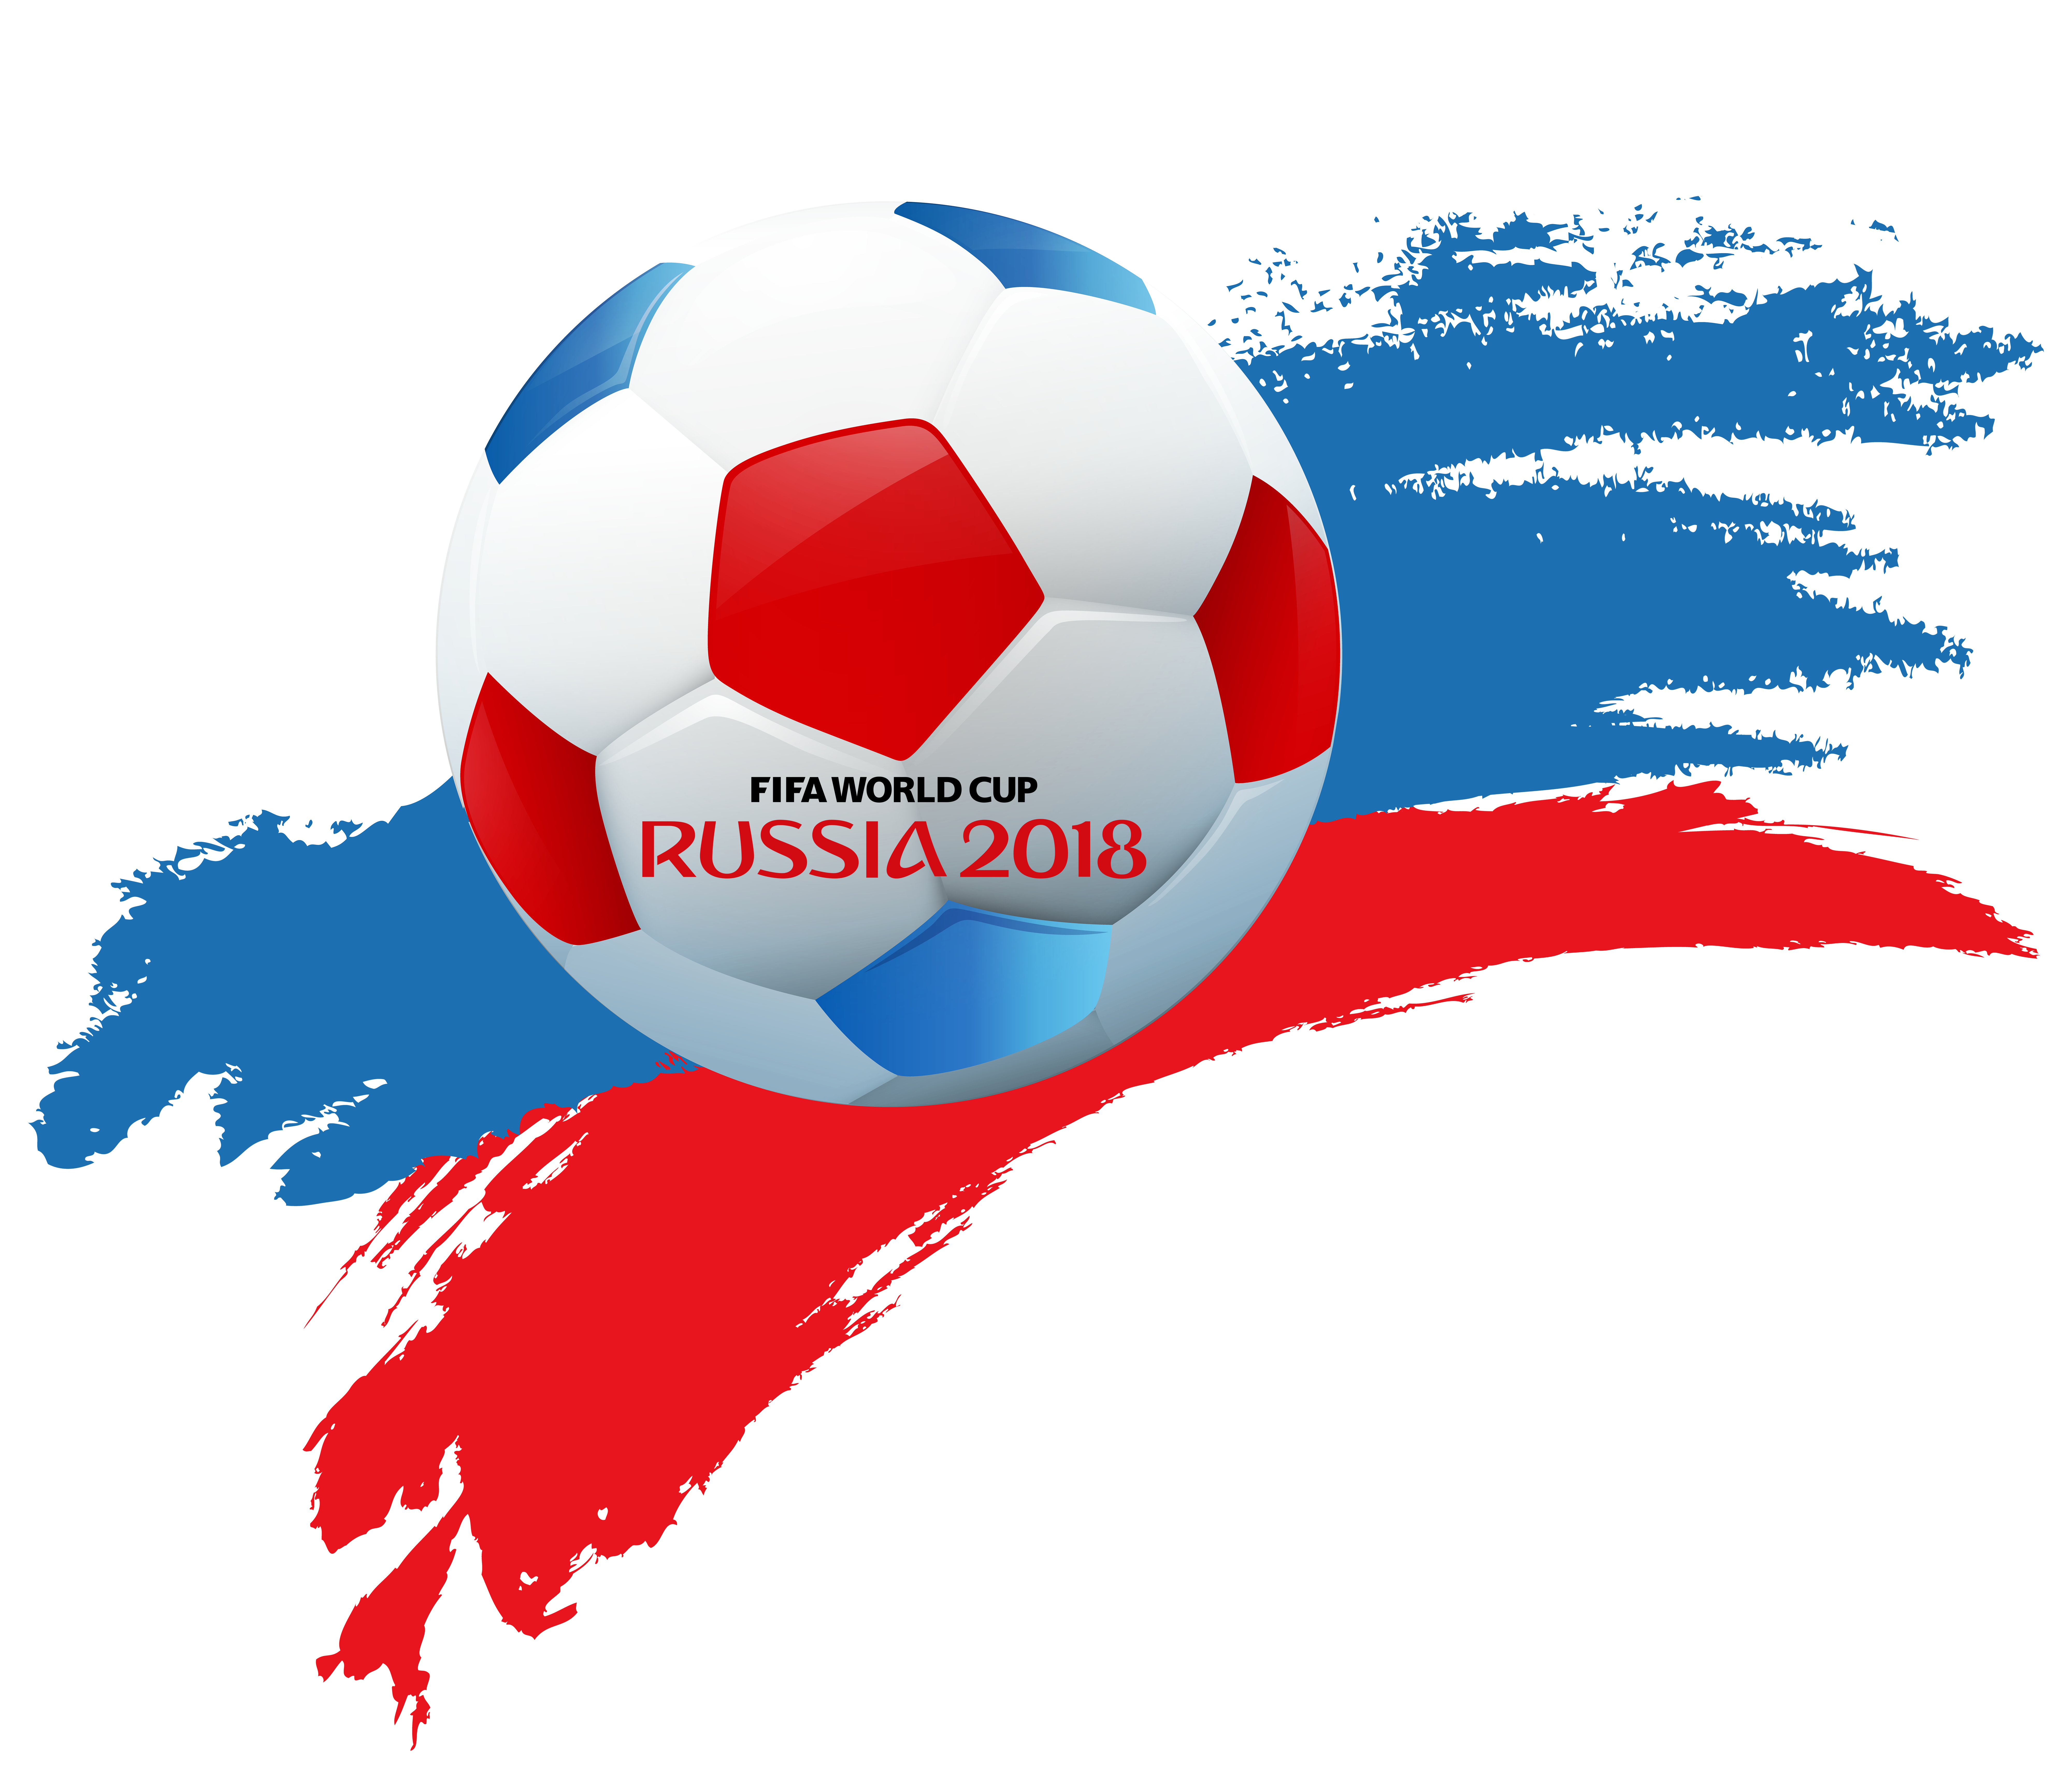 Football 2016 clipart clip free stock UEFA Euro 2016 Football Blue Graphics - World Cup Russia 2018 PNG ... clip free stock